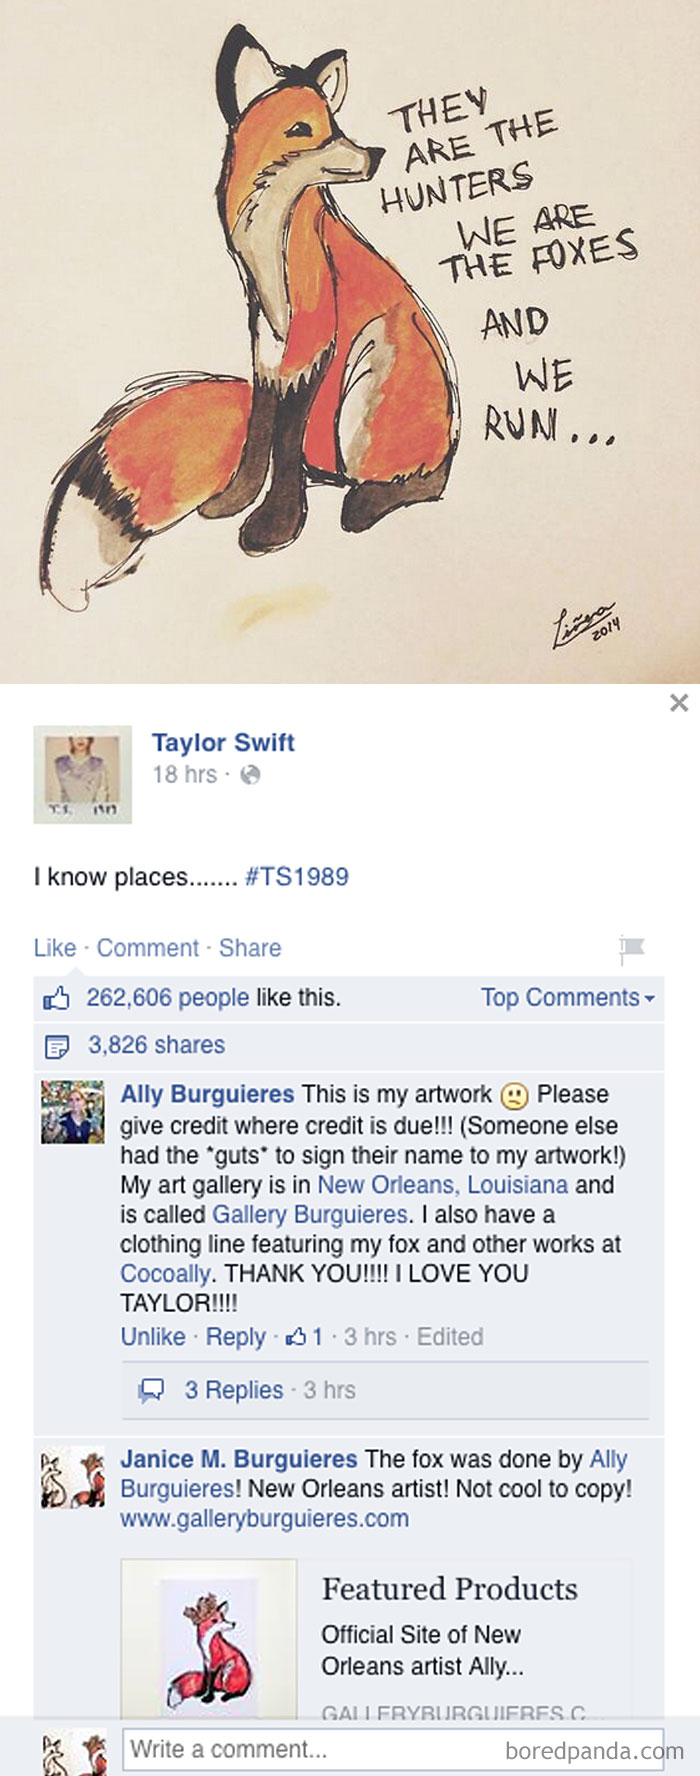 Taylor Swift Posted A Fan Art Which Later Turned Out To Be Art Thievery From Artist Ally Burguieres